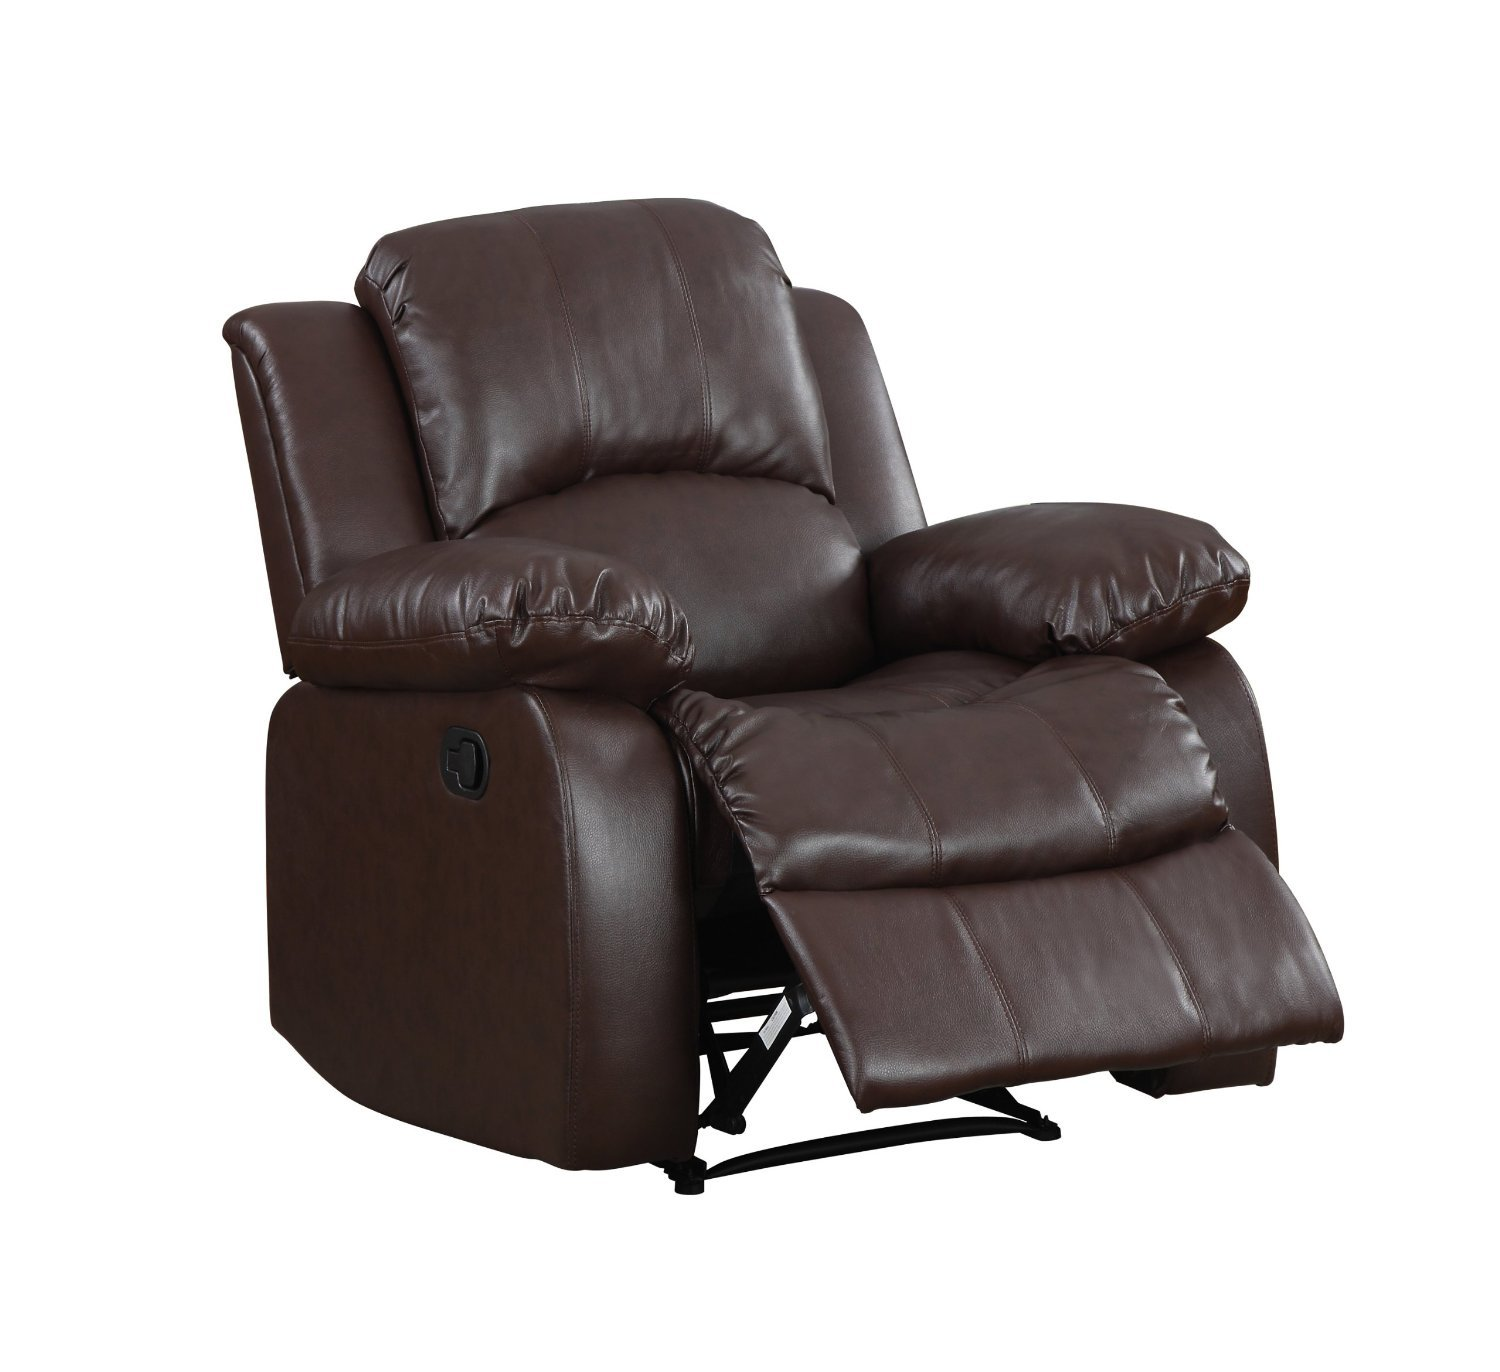 Amazon.com Divano Roma Furniture Classic Bonded Leather Recliner Chair Brown Kitchen u0026 Dining  sc 1 st  Amazon.com & Amazon.com: Divano Roma Furniture Classic Bonded Leather Recliner ... islam-shia.org